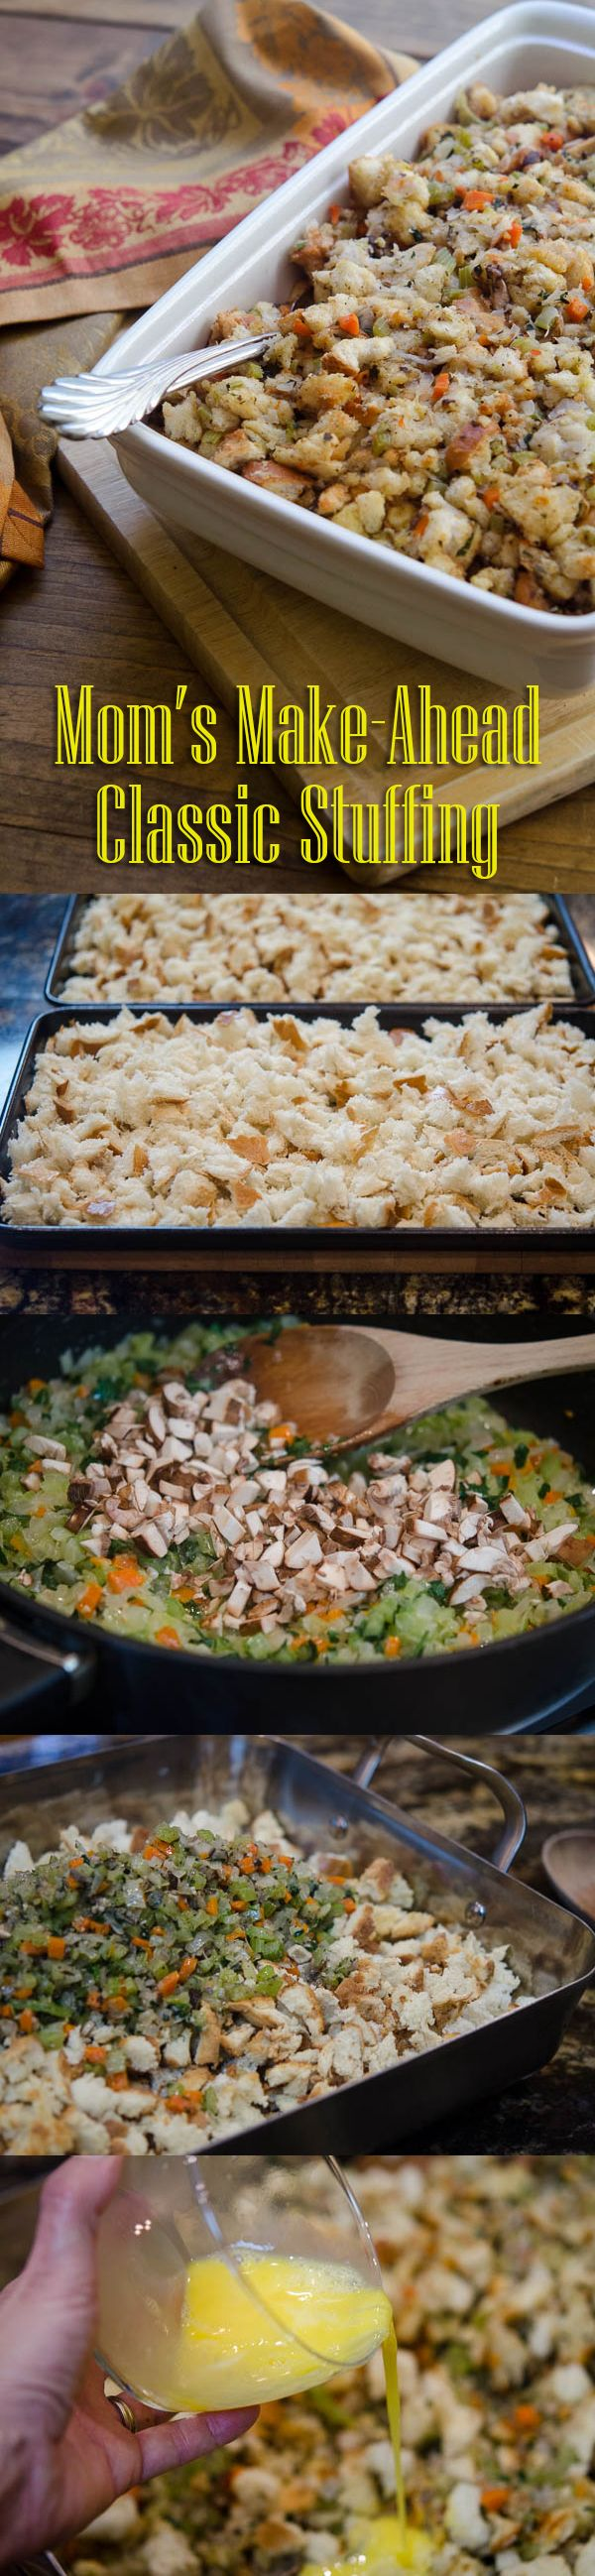 A classic stuffing recipe you can't mess up! Traditional recipe you can make ahead of time (one less thing to worry about on the already crazy day). Mother Approved: http://www.ehow.com/ehow-food/blog/moms-classic-make-ahead-bread-stuffing/?utm_source=pinterest&utm_medium=fanpage&utm_content=blog